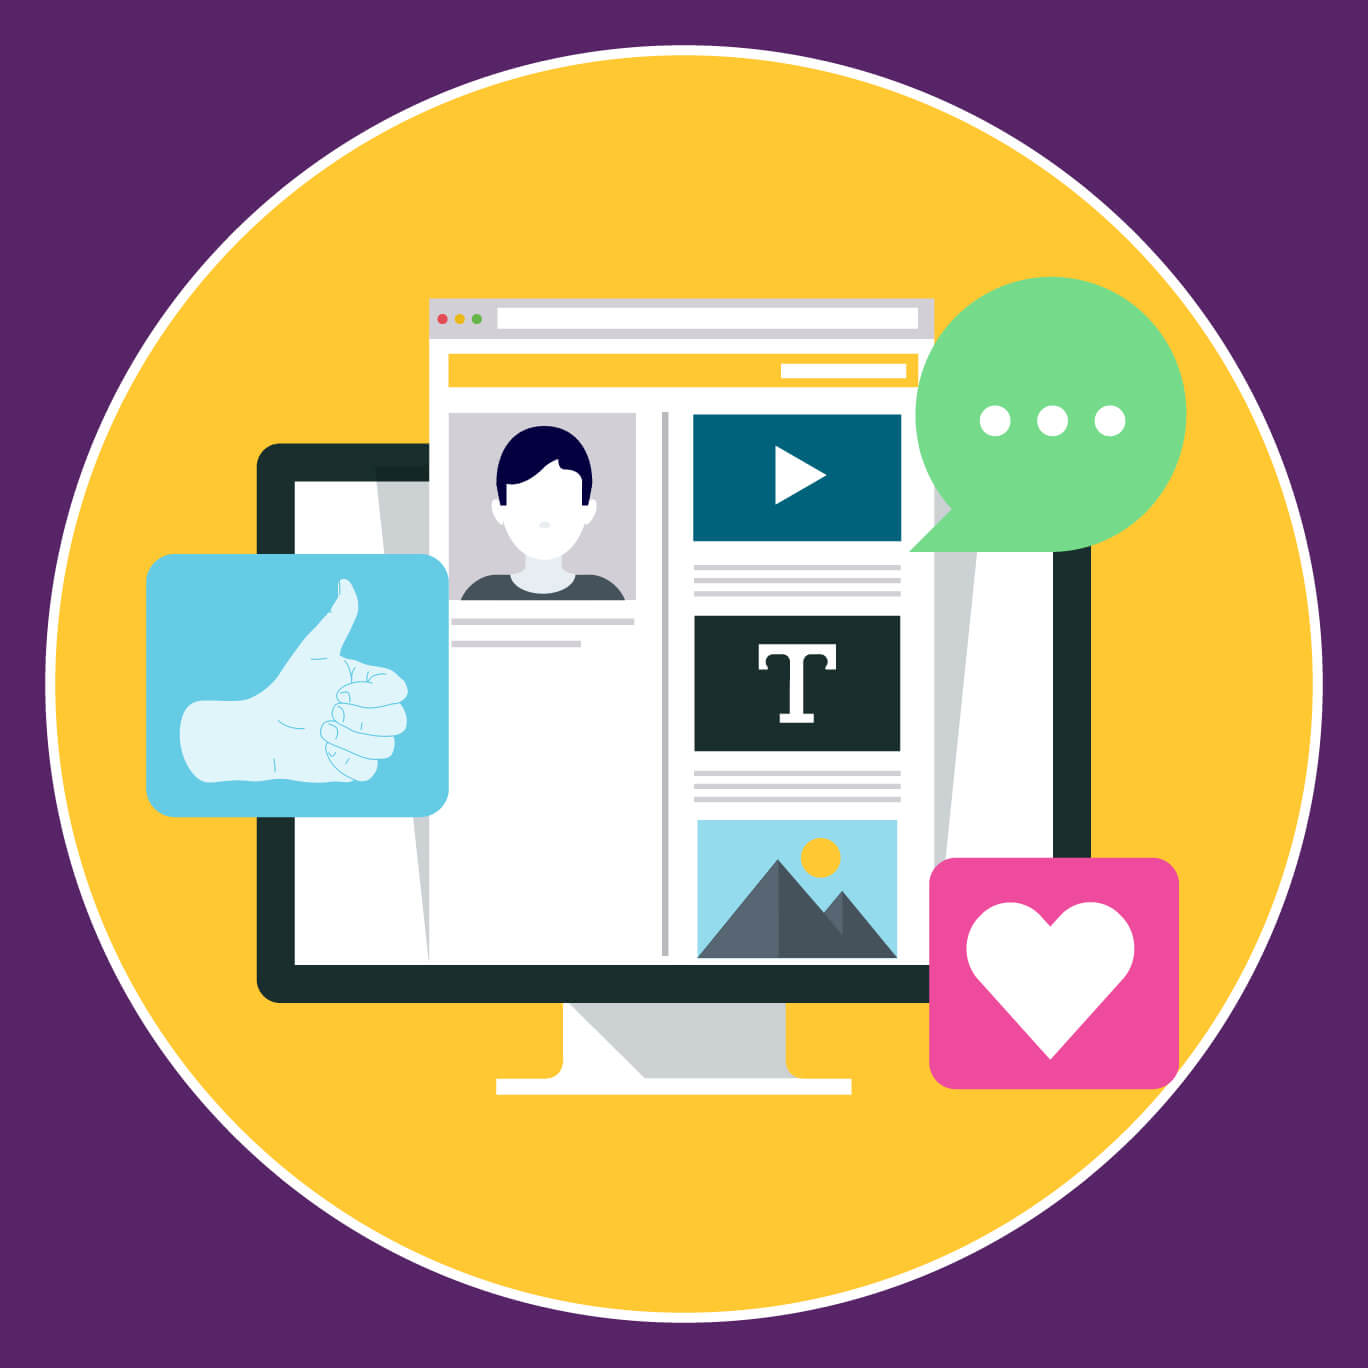 Helping clients with social media